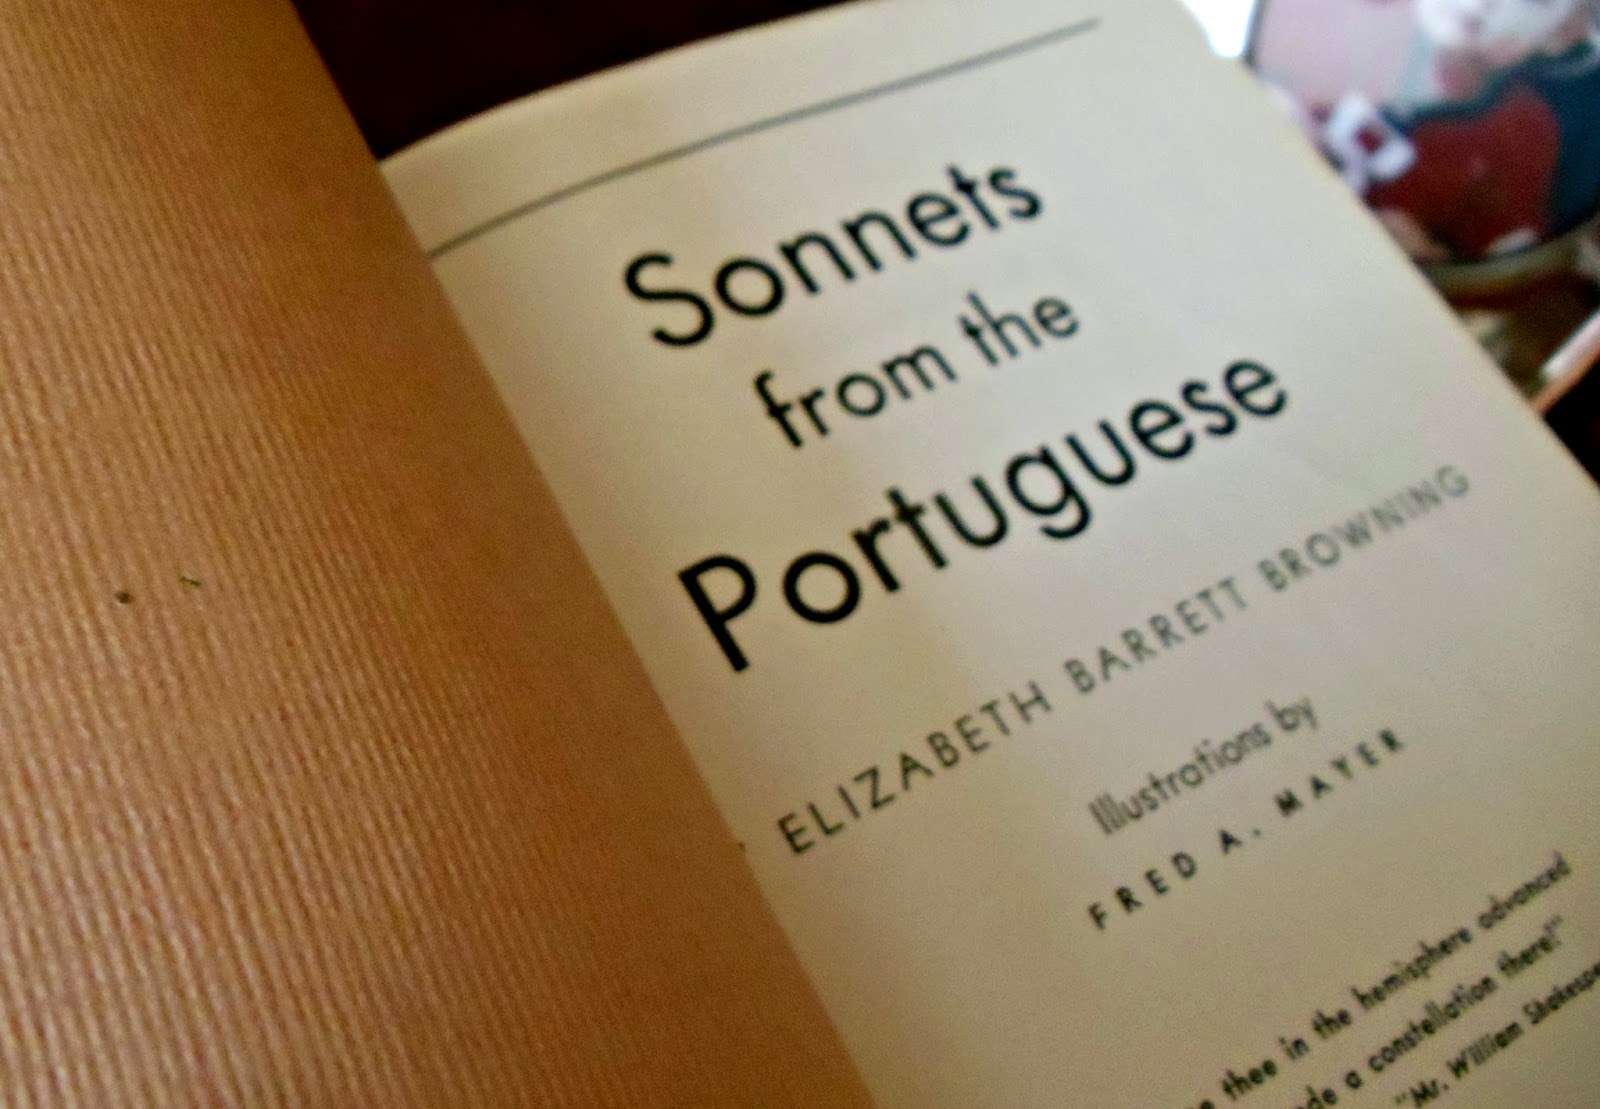 hope in sonnets from the portuguese Sonnets from the portuguese, written ca 1845–1846 and published first in 1850, is a collection of 44 love sonnets written by elizabeth barrett browningthe collection was acclaimed and popular during the poet's lifetime and it remains so.